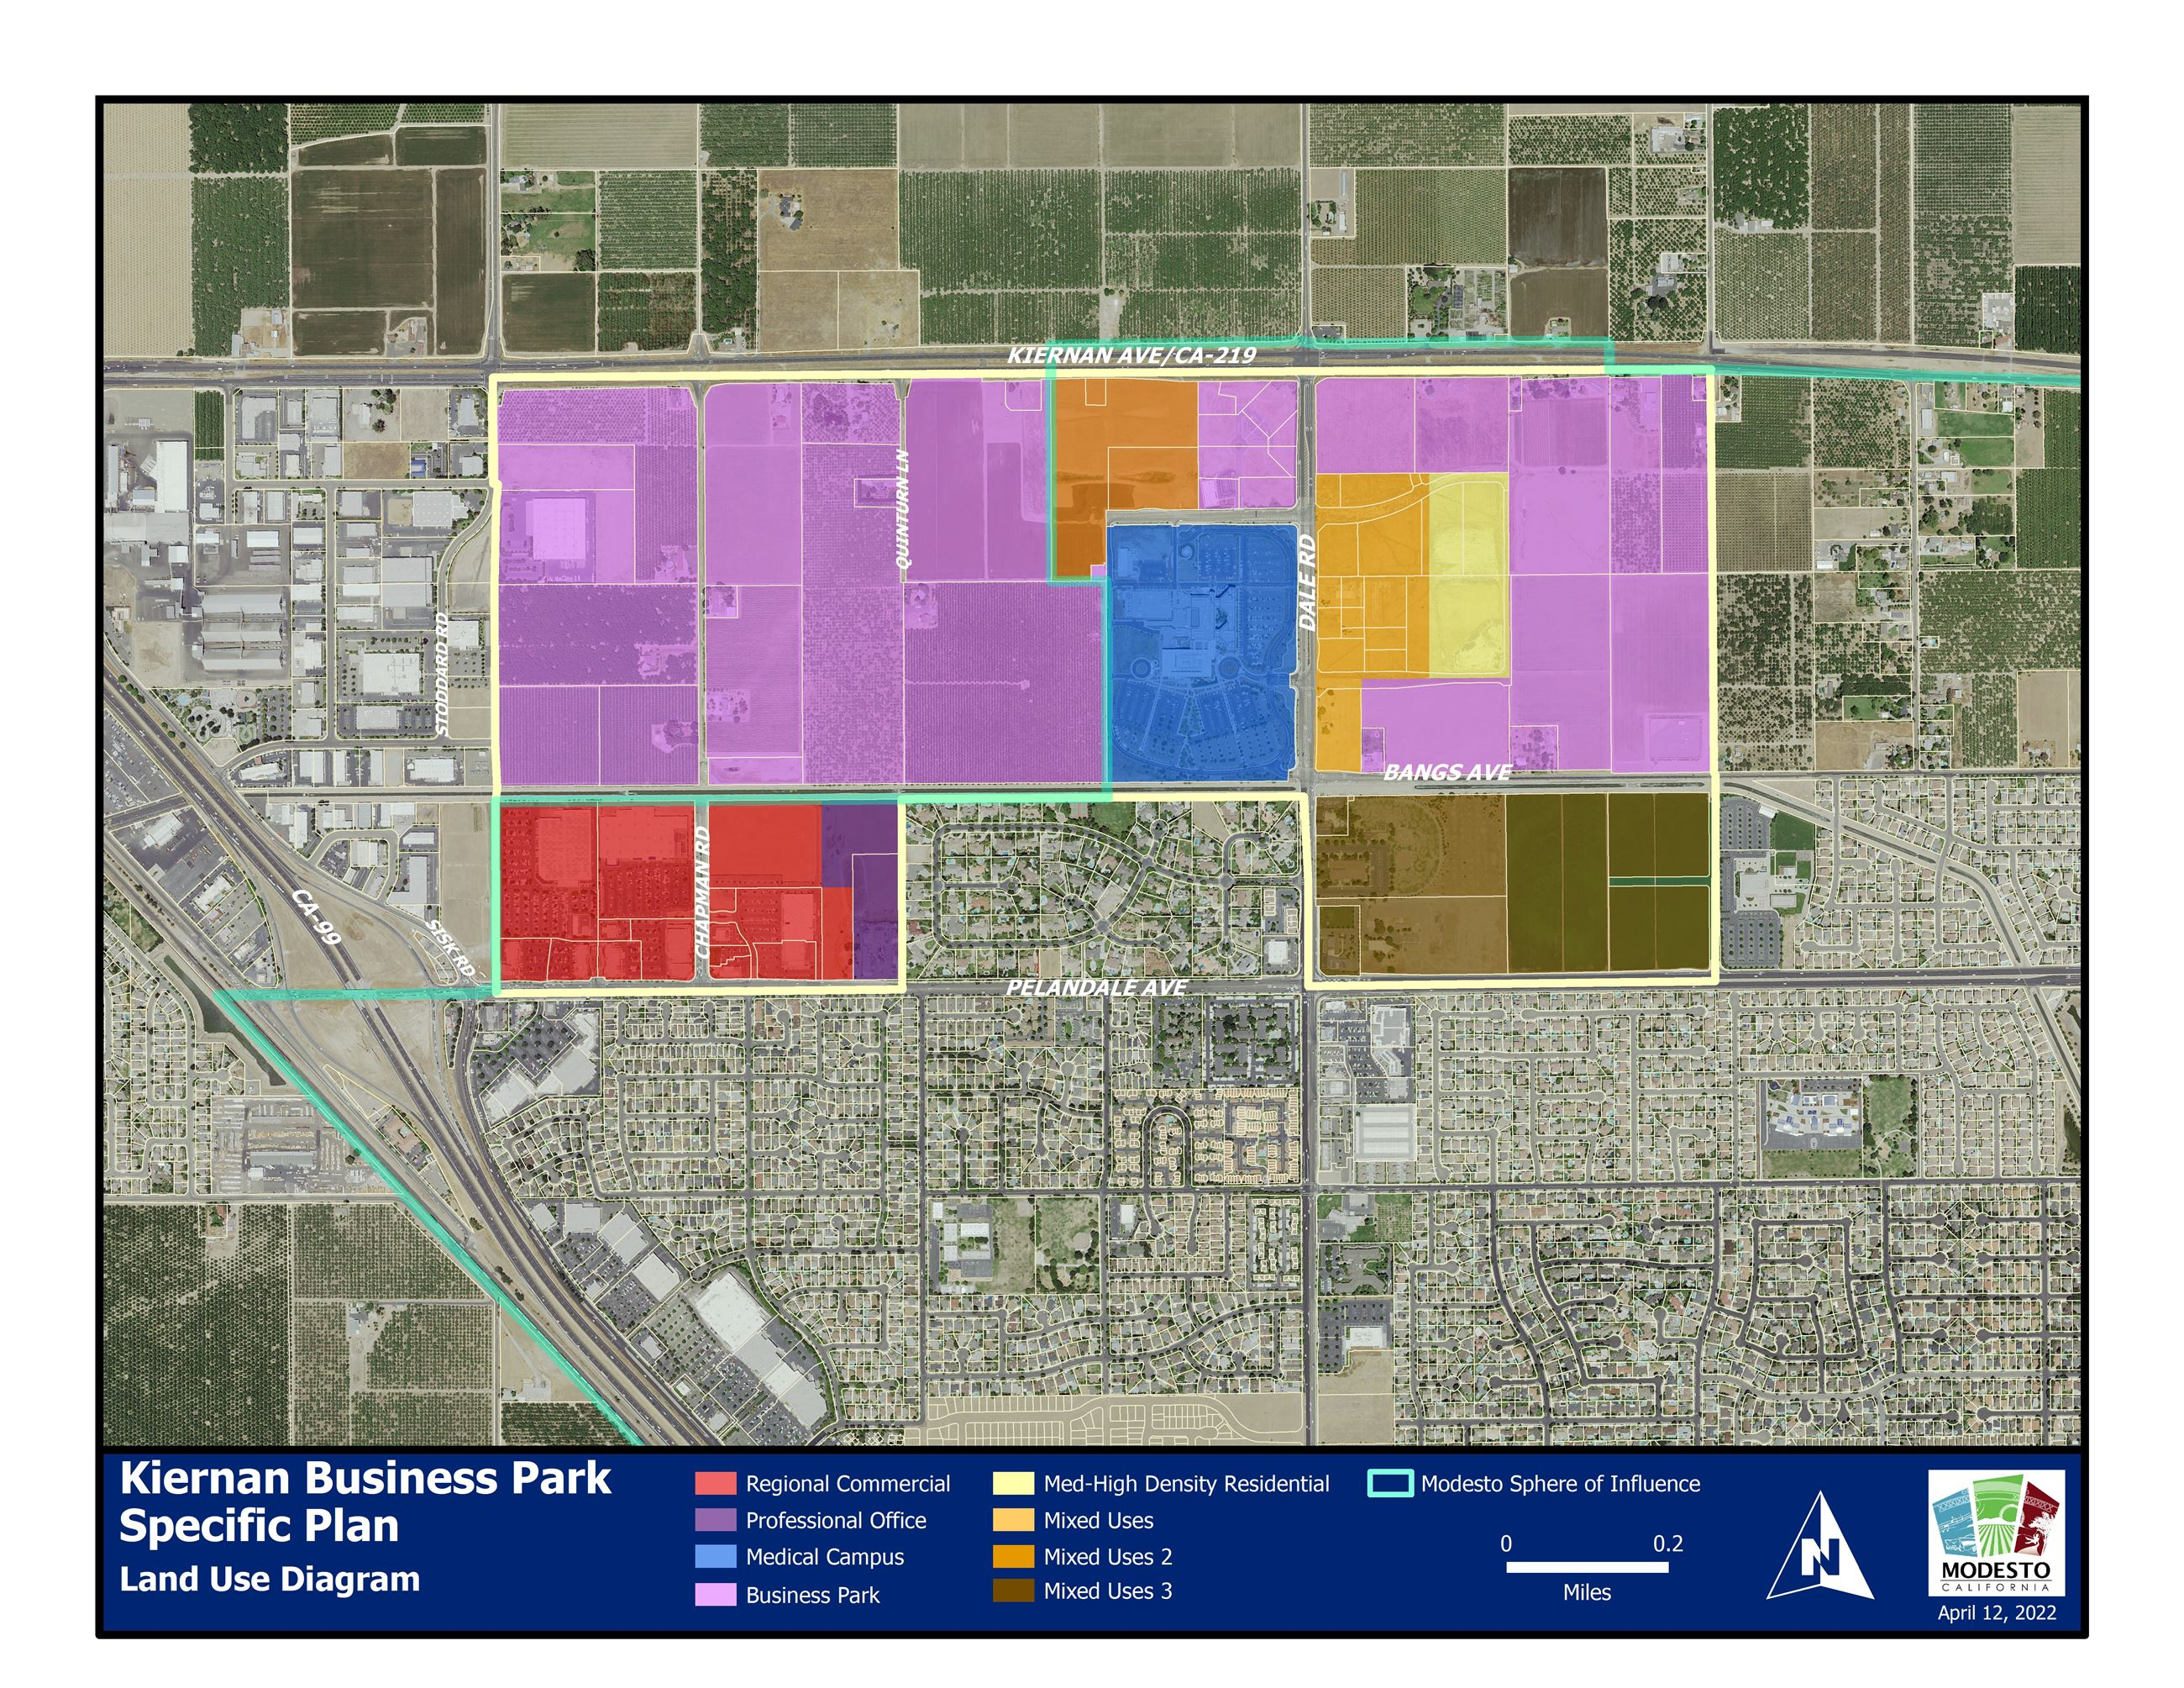 Kiernan Business Park Specific Plan Land Use Diagram